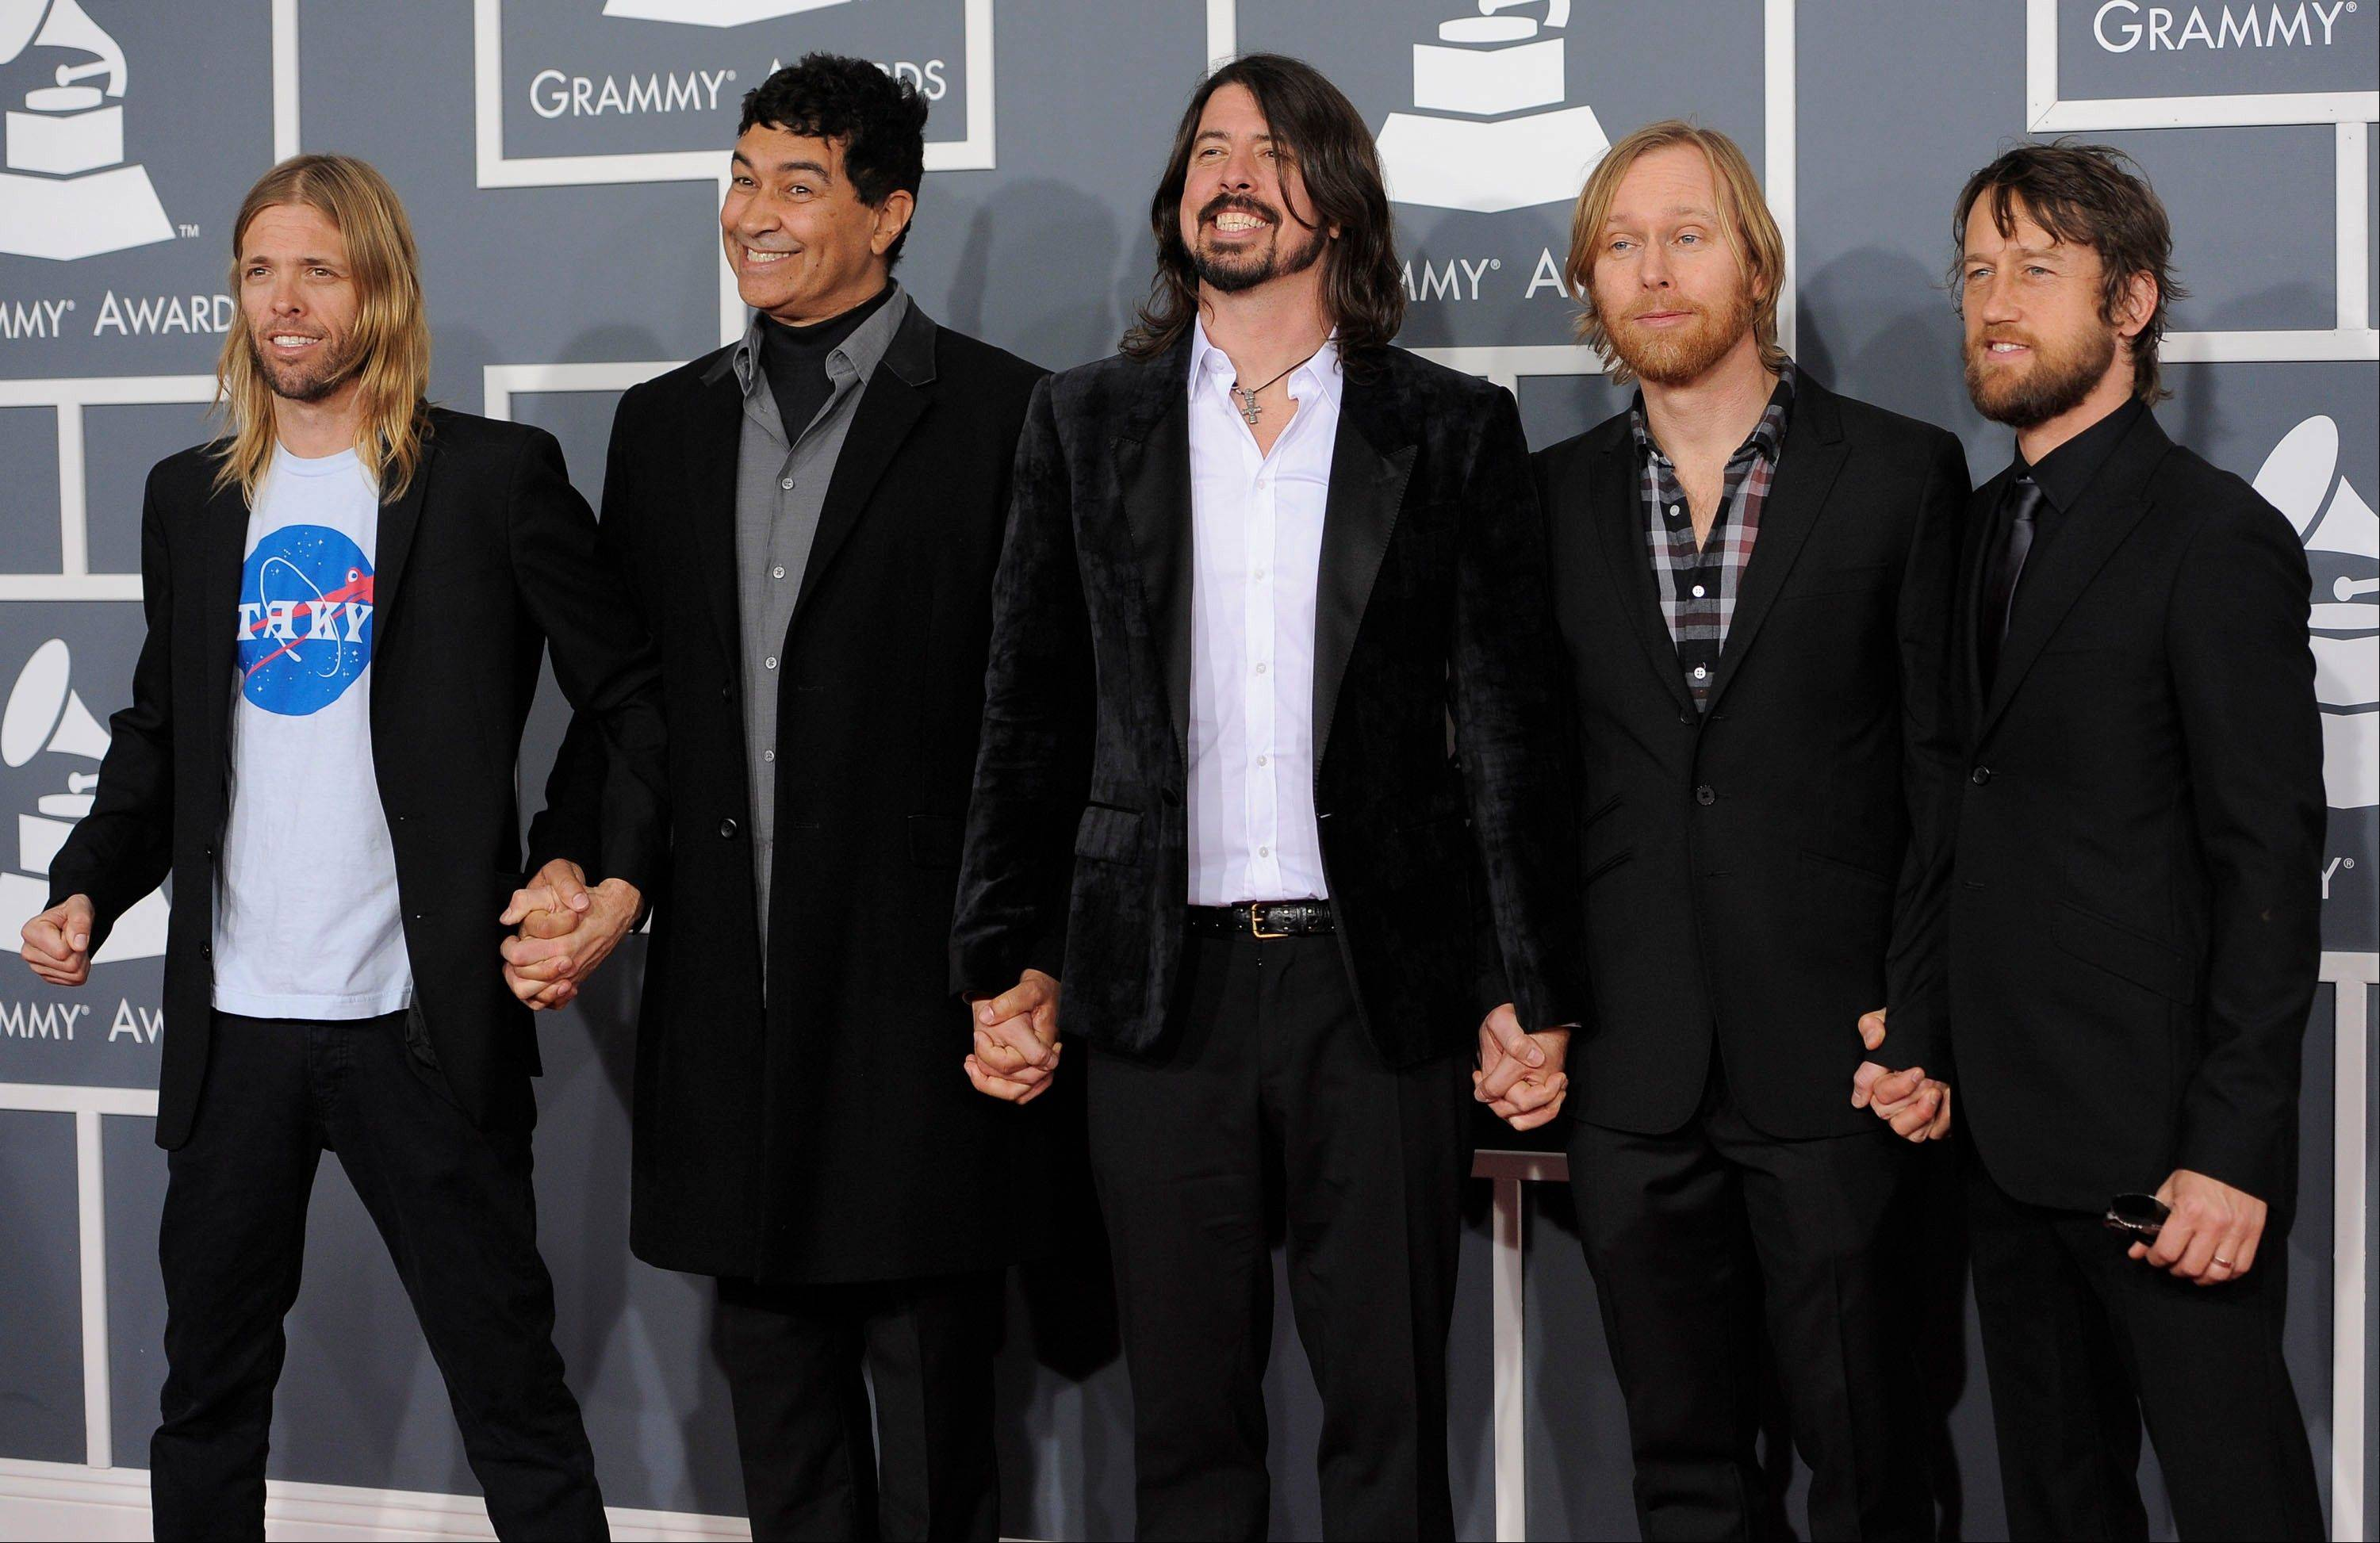 Dave Grohl, third from left, and members of the band Foo Fighters arrive Sunday at the 54th annual Grammy Awards in Los Angeles.